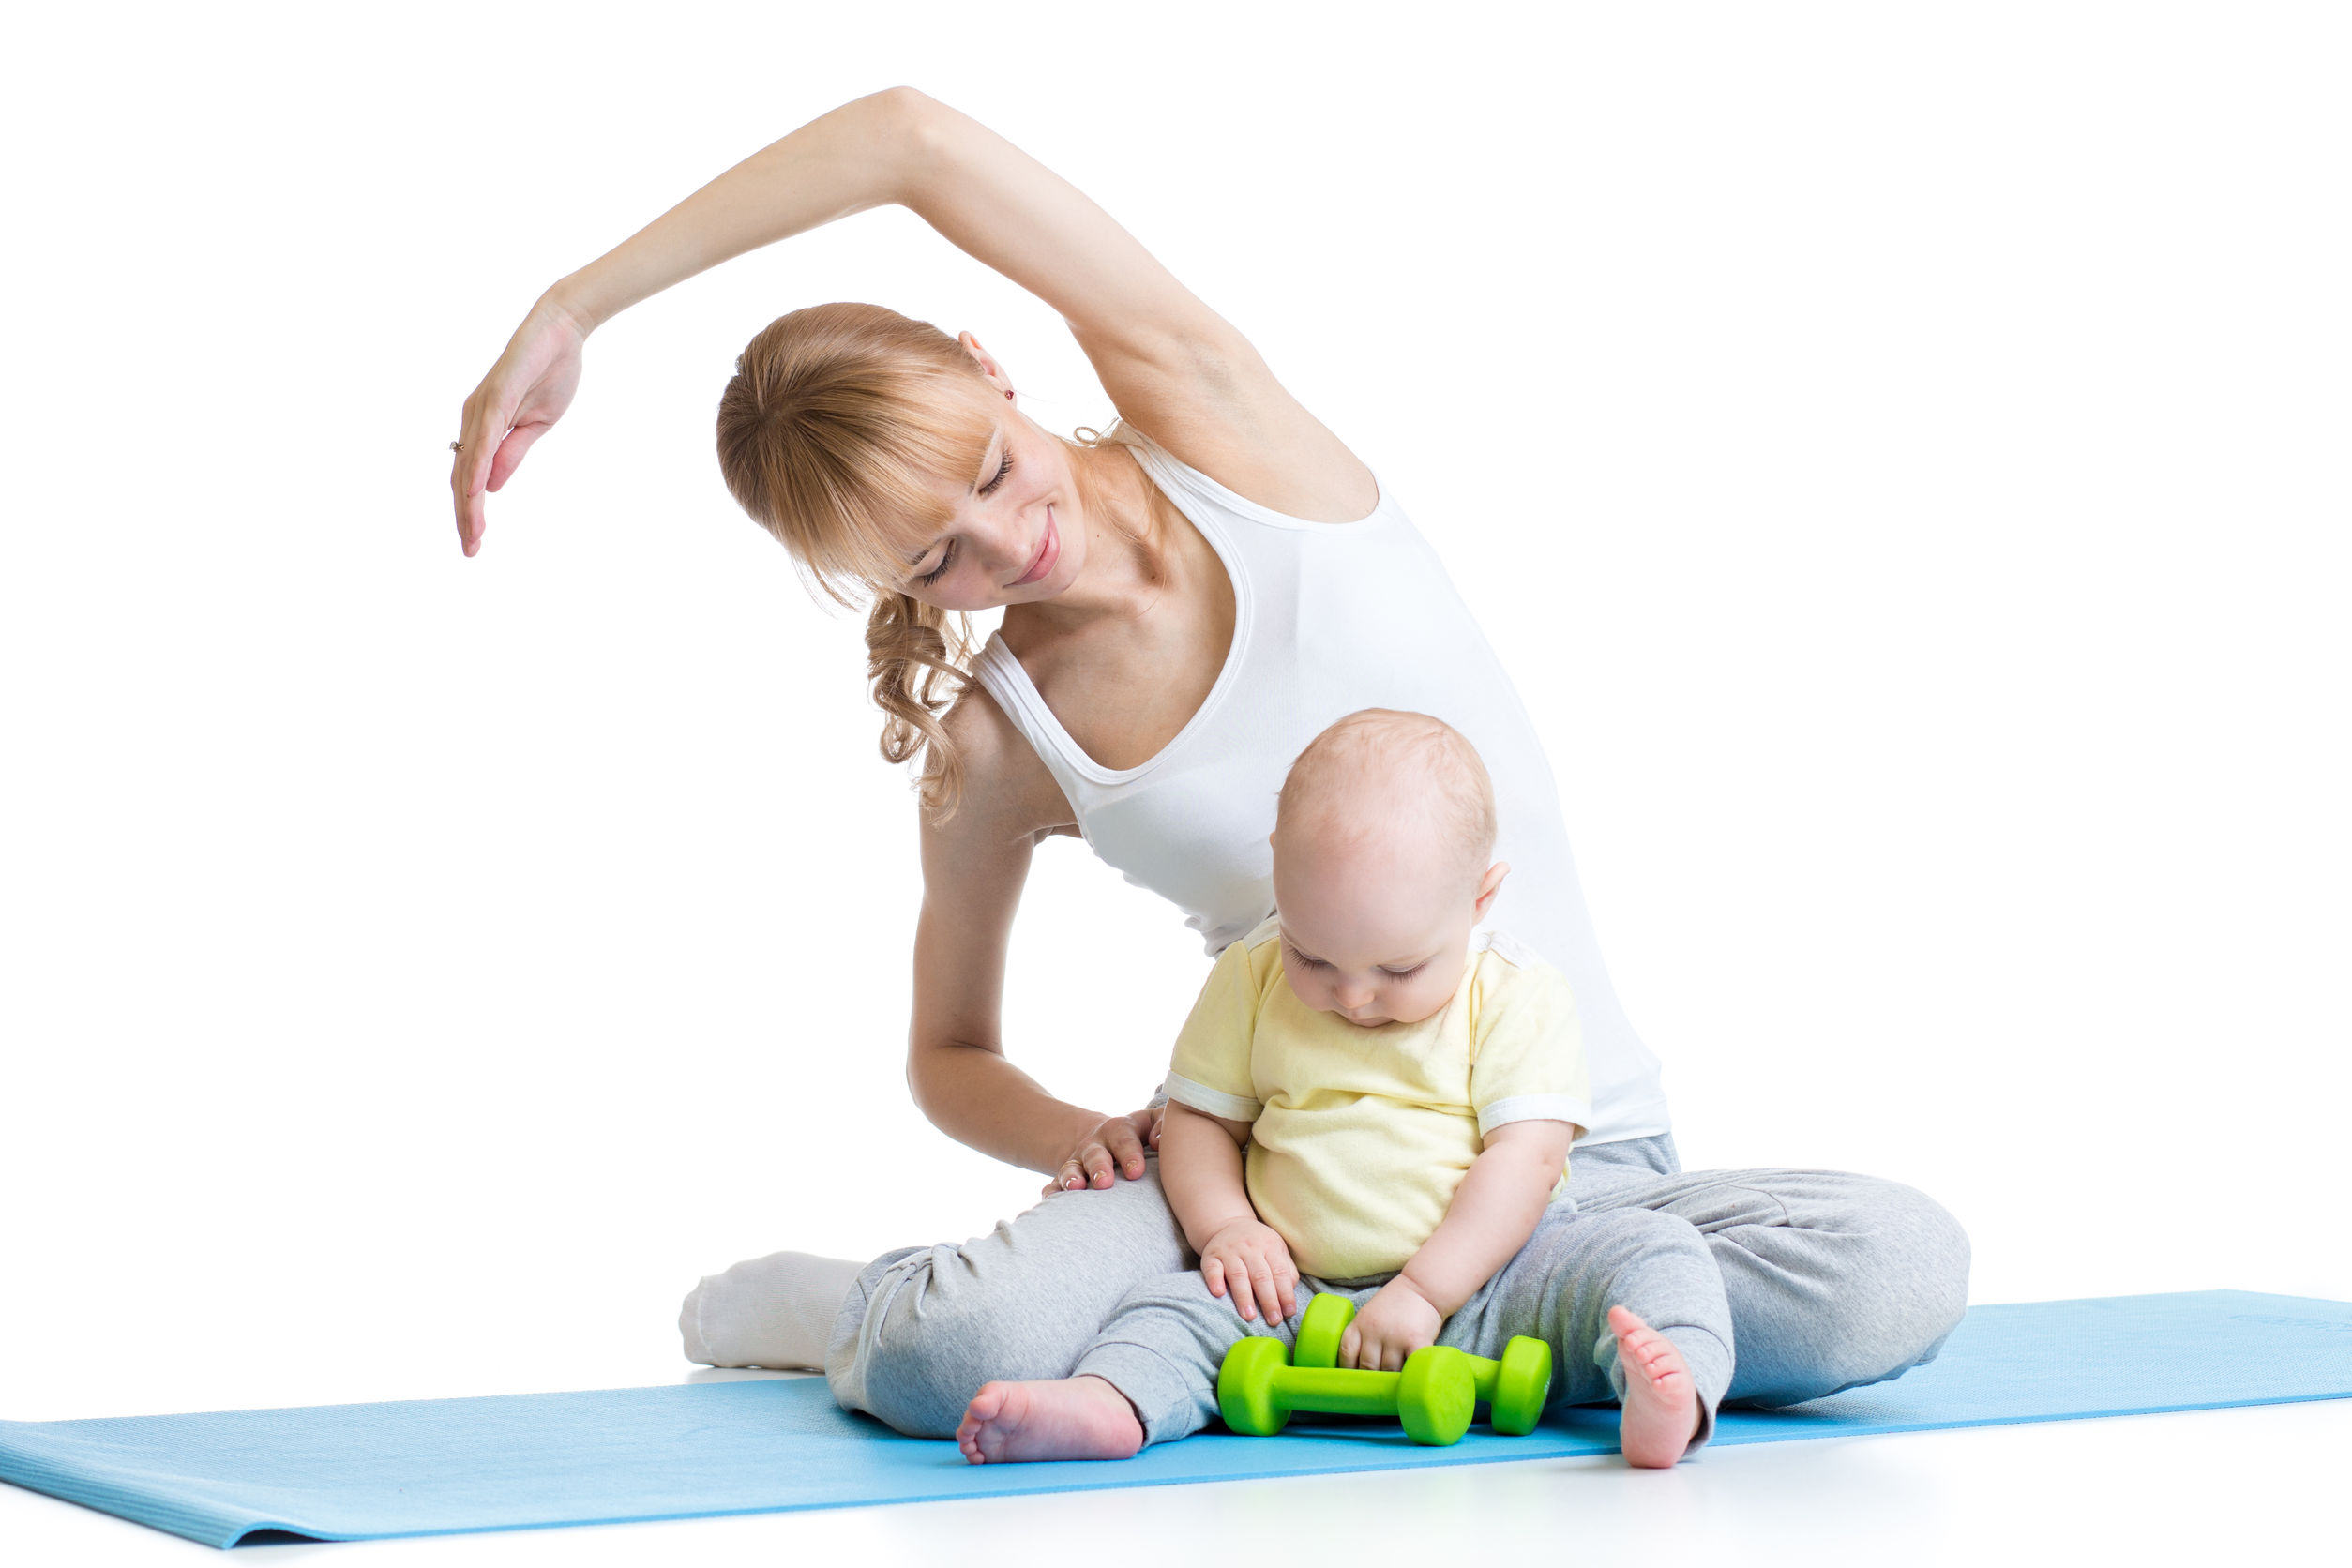 A mother exercising while her baby plays nearby